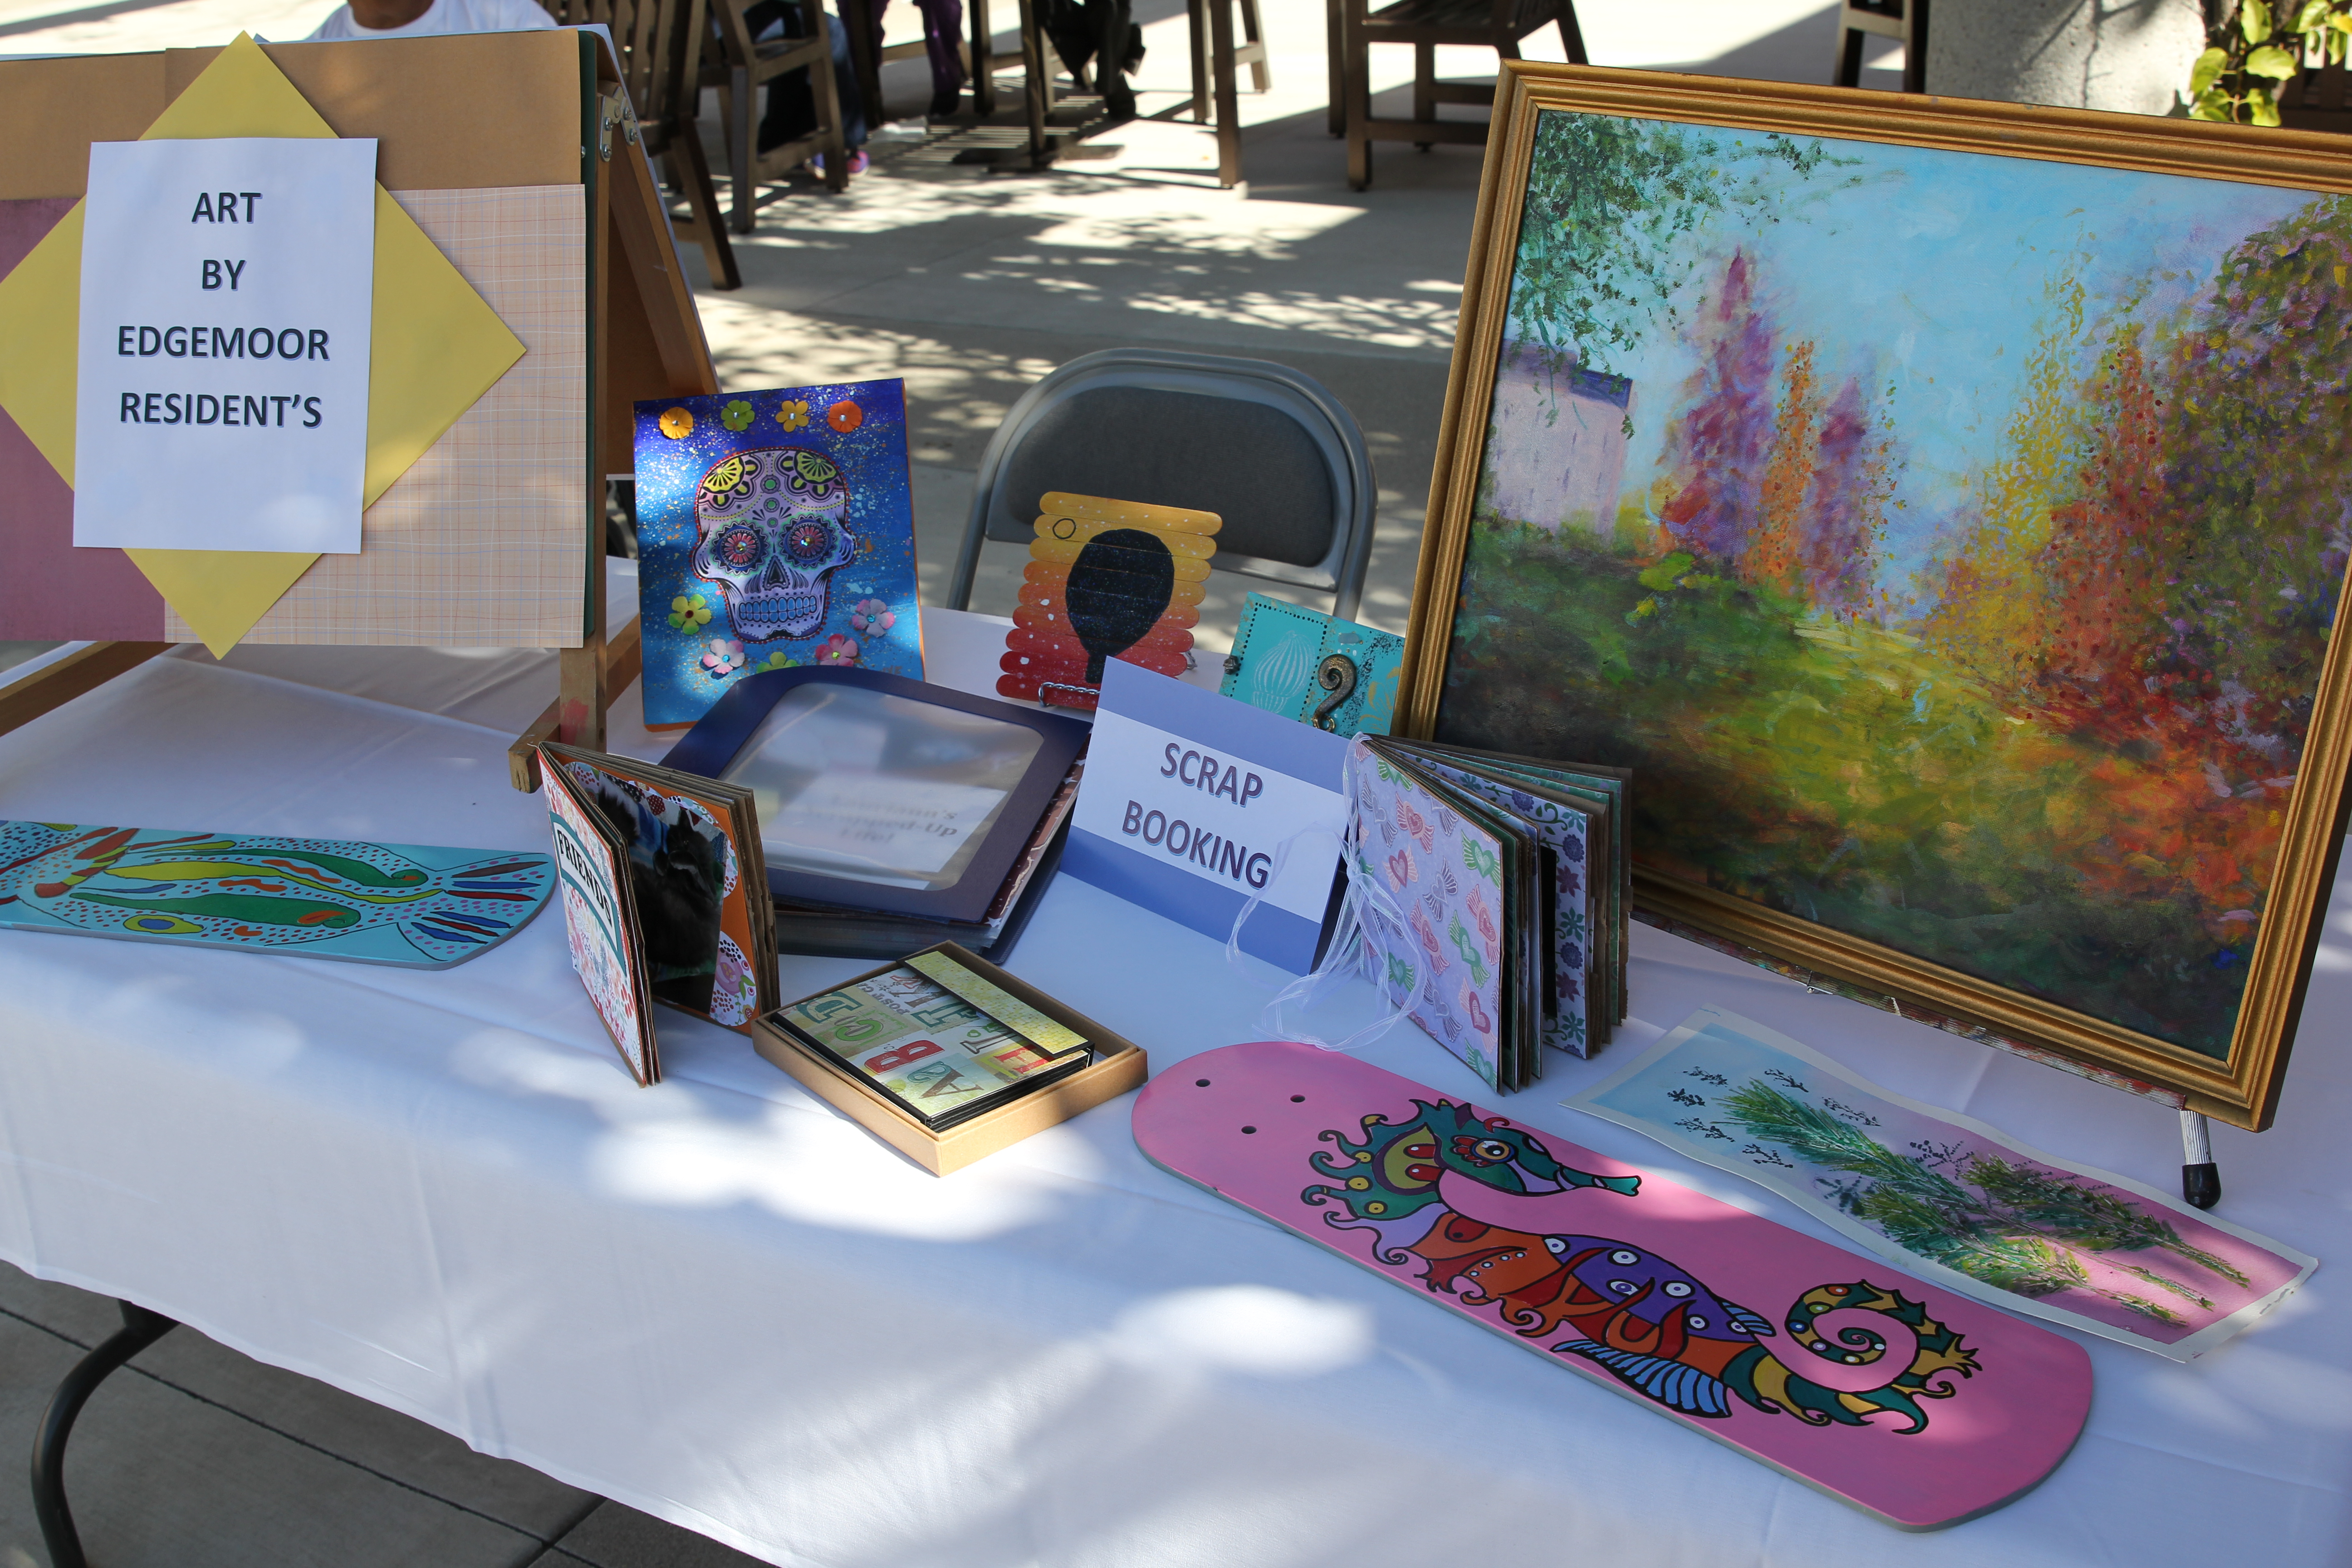 picture of art created by edgemoor residents